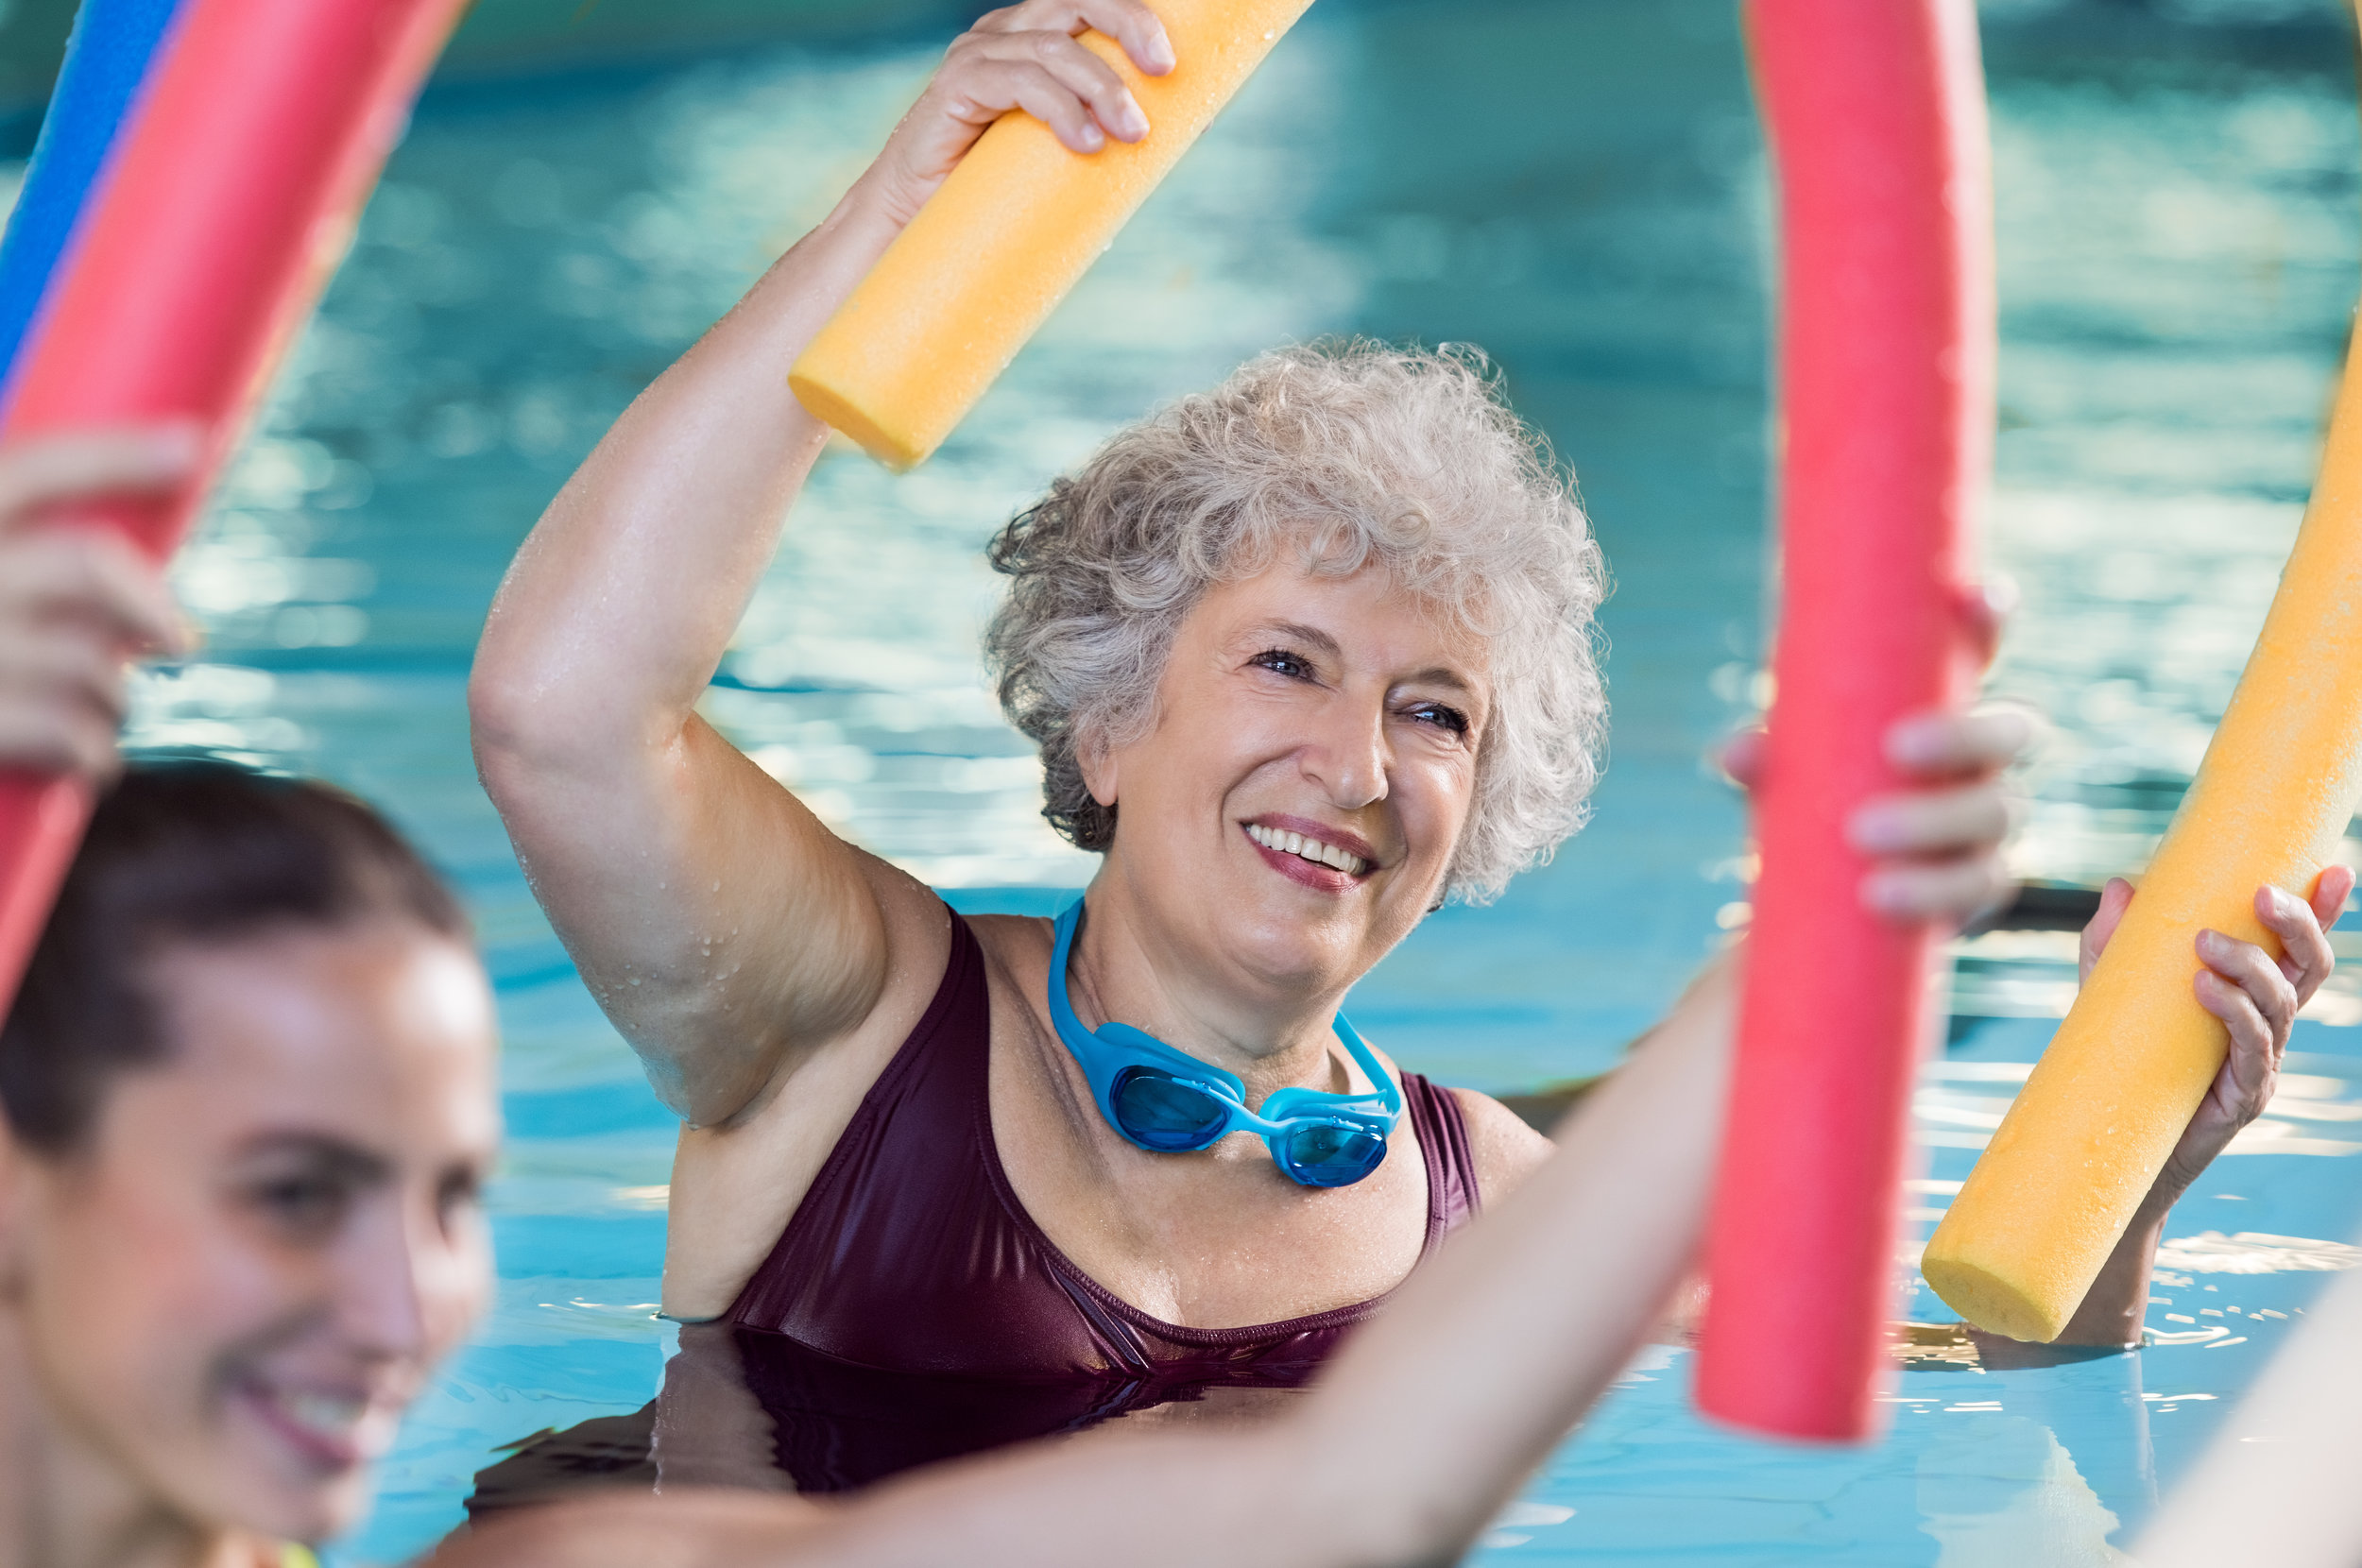 Flexibility and Mobility As You Age Image